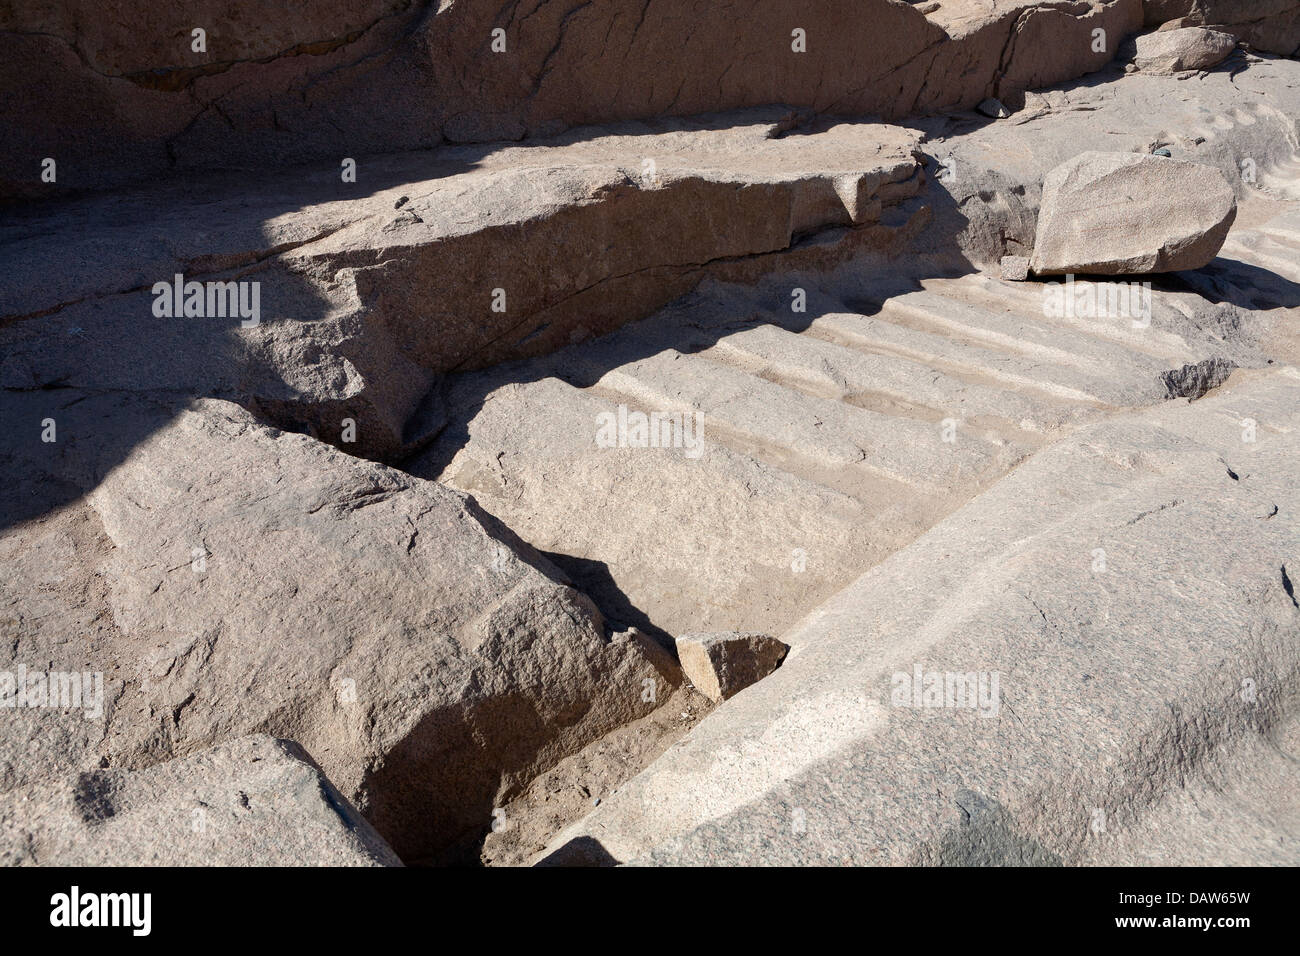 Quarry workings in The Unfinished Obelisk Open Air Museum, Northern Quarries, Aswan, Egypt - Stock Image